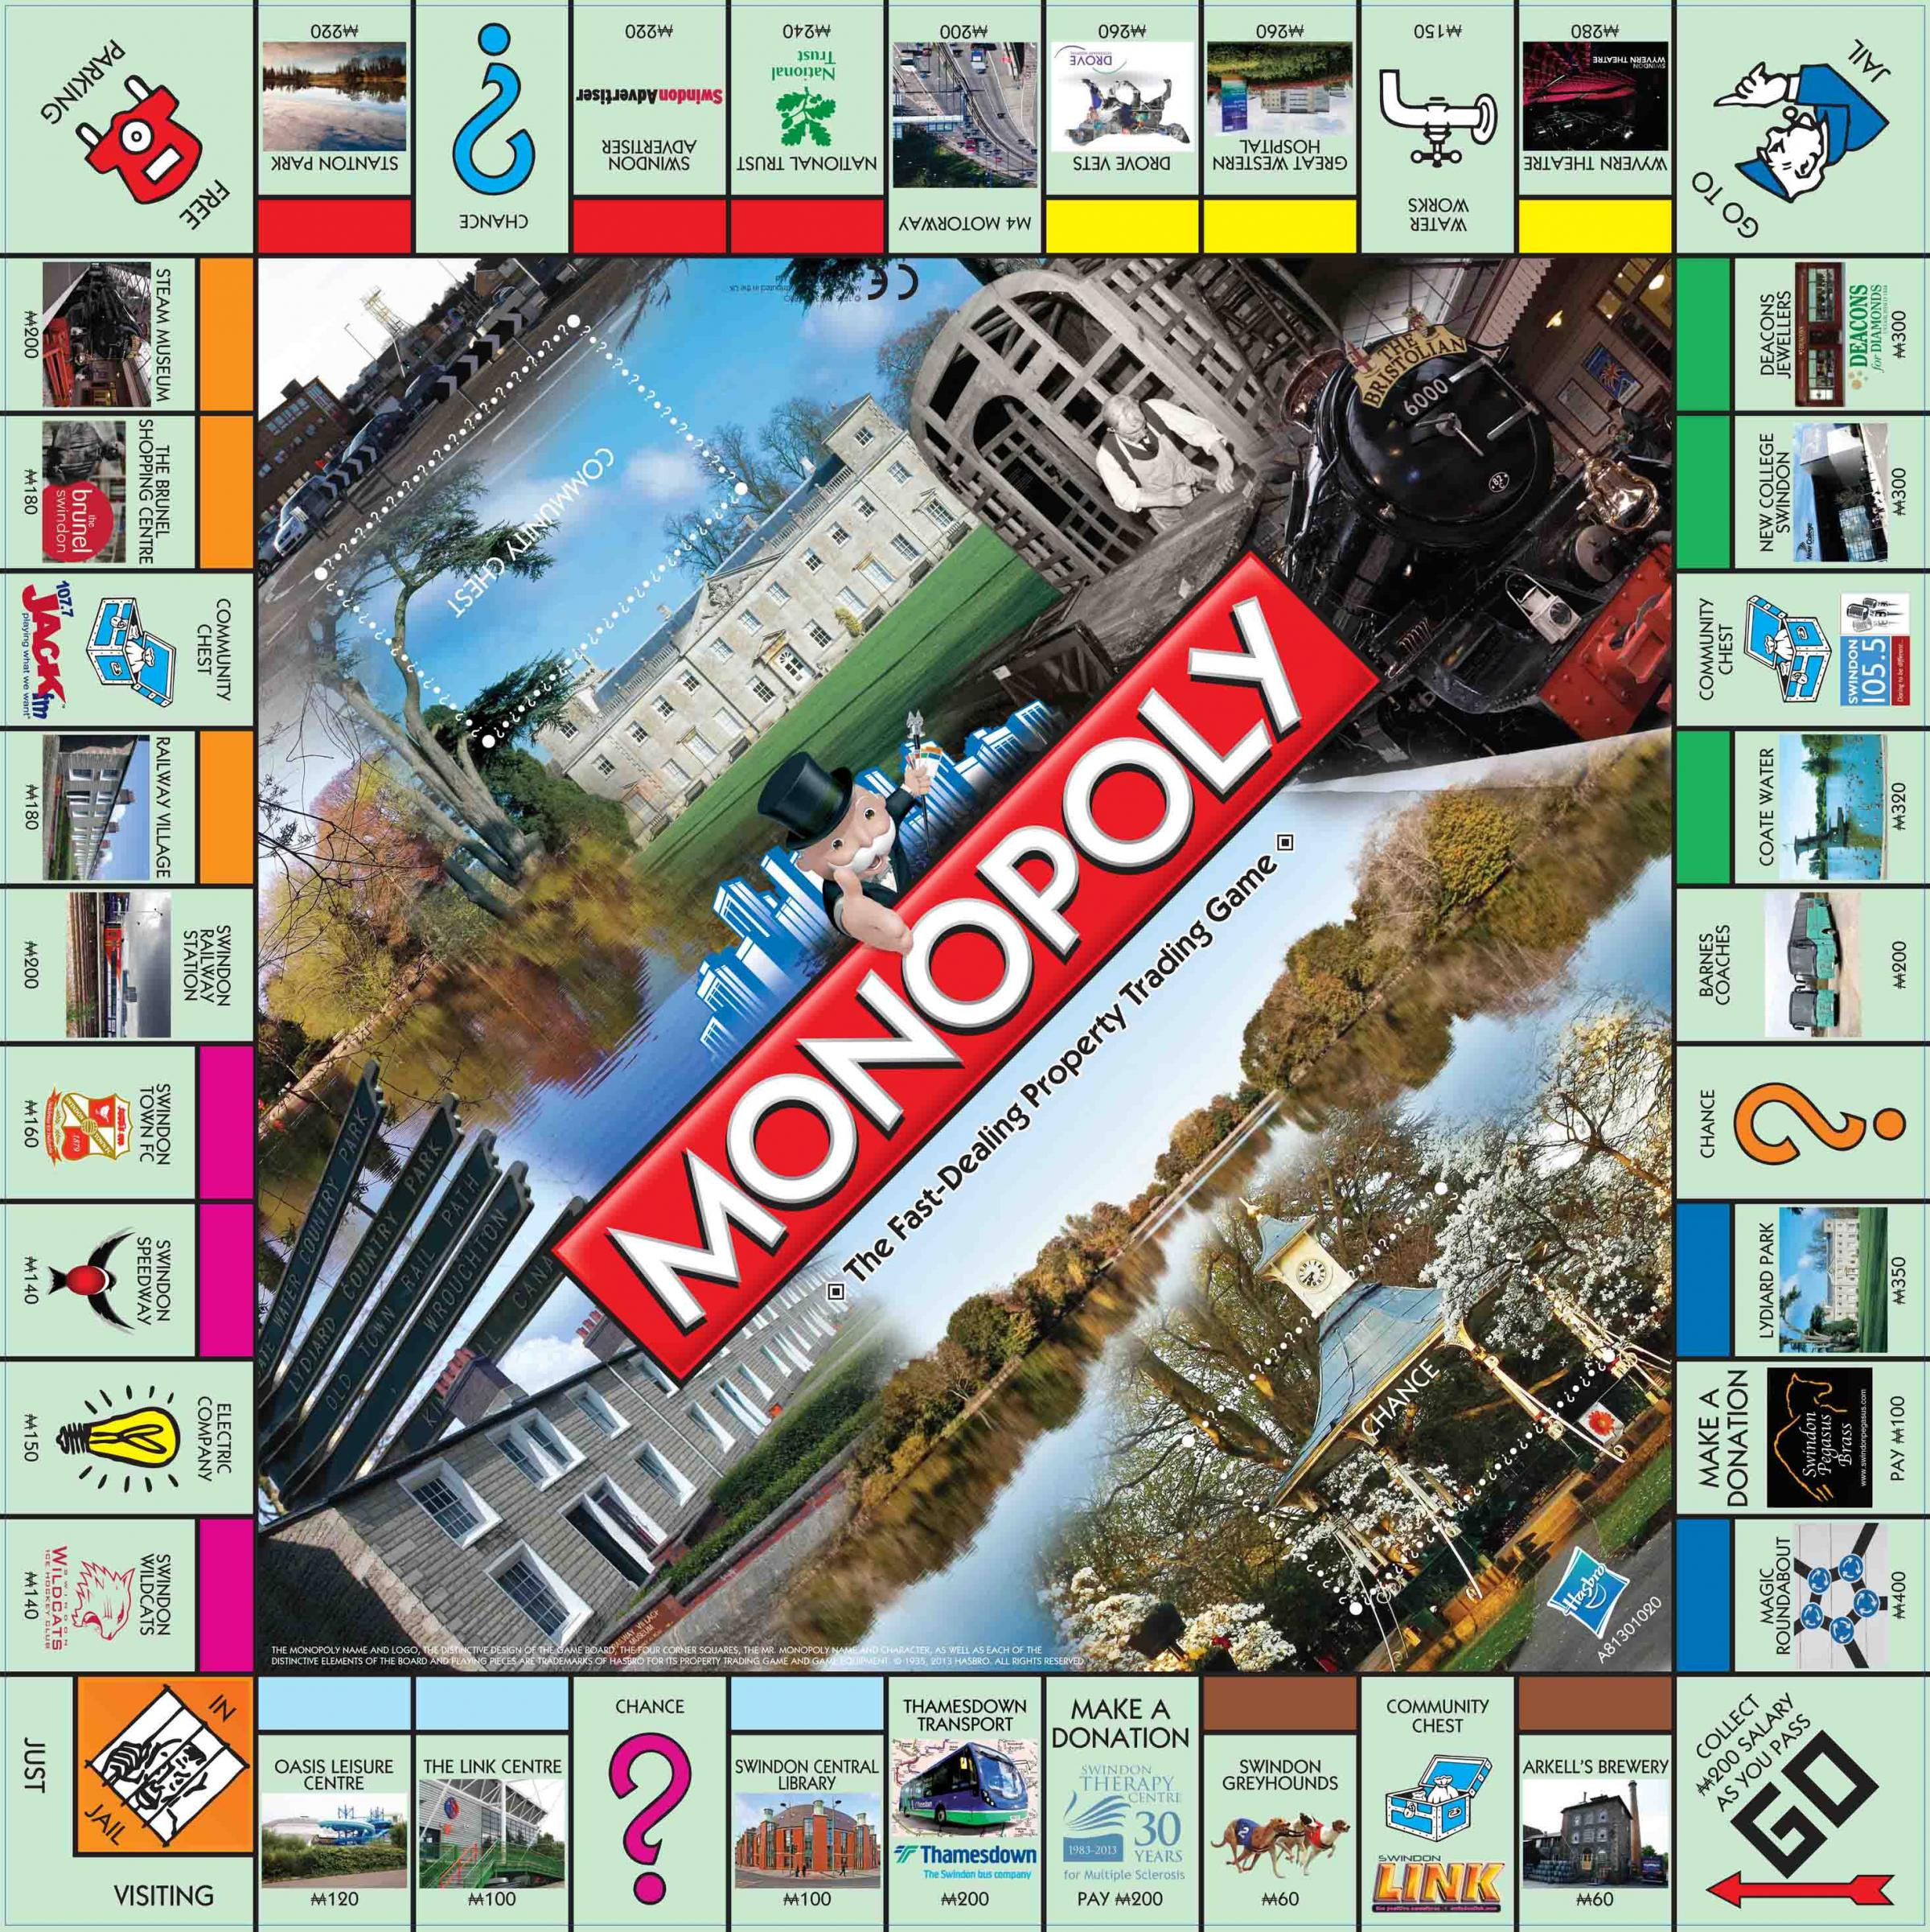 Swindon Monopoly game is launched